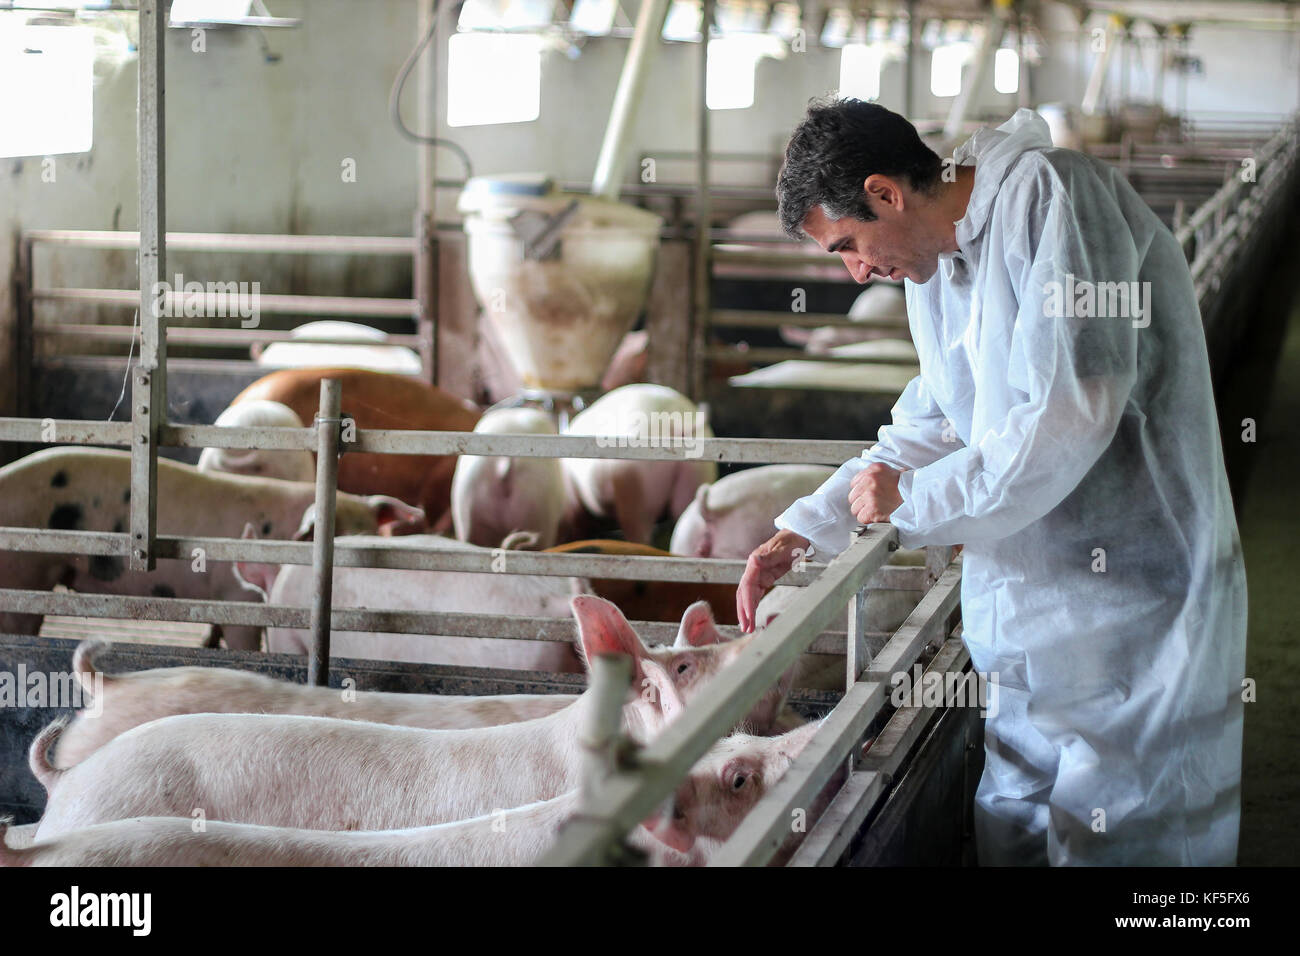 Intensive pig farming. Veterinarian doctor wearing protective suit. - Stock Image